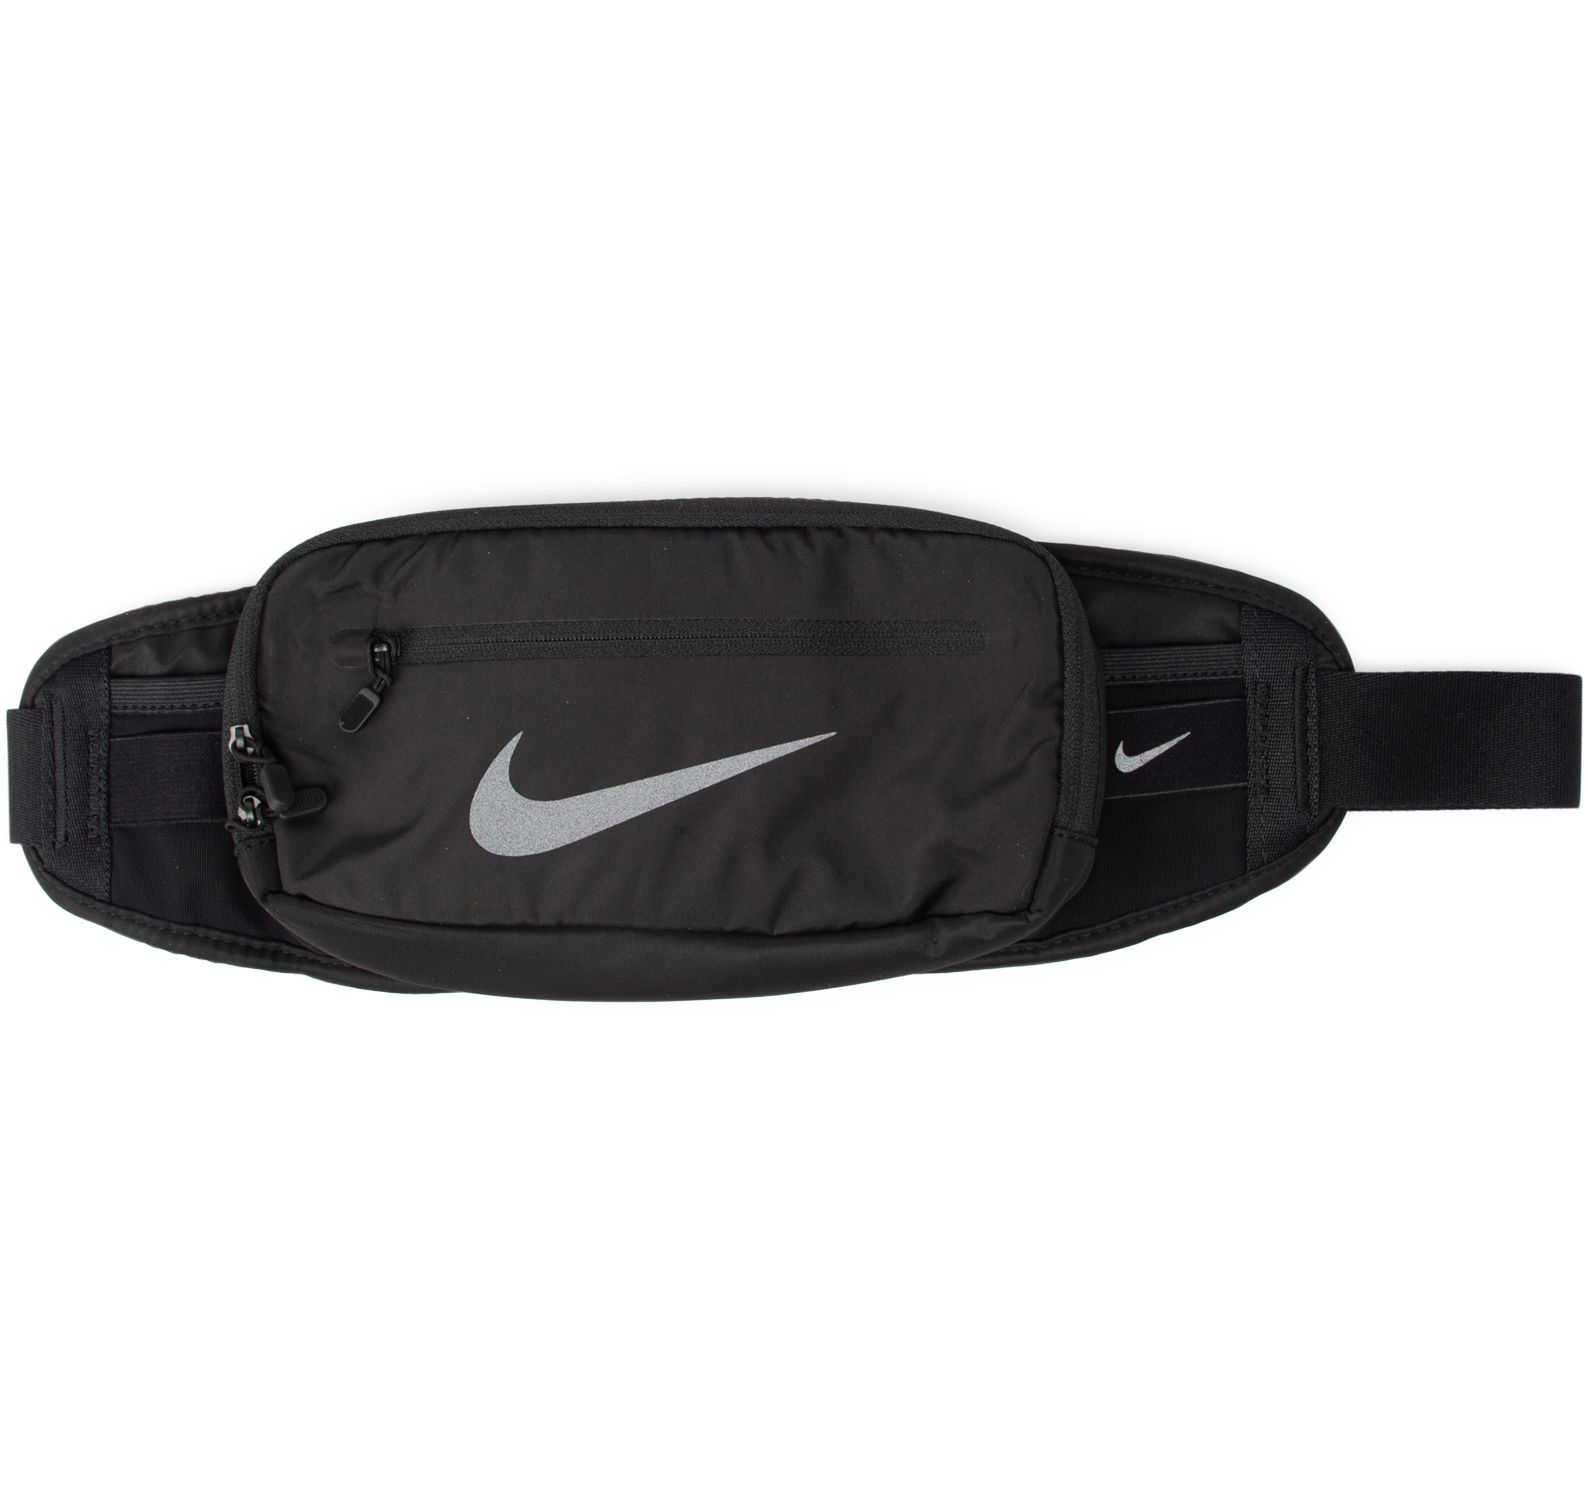 nike run hip pack, black/black/black, onesize,  nike